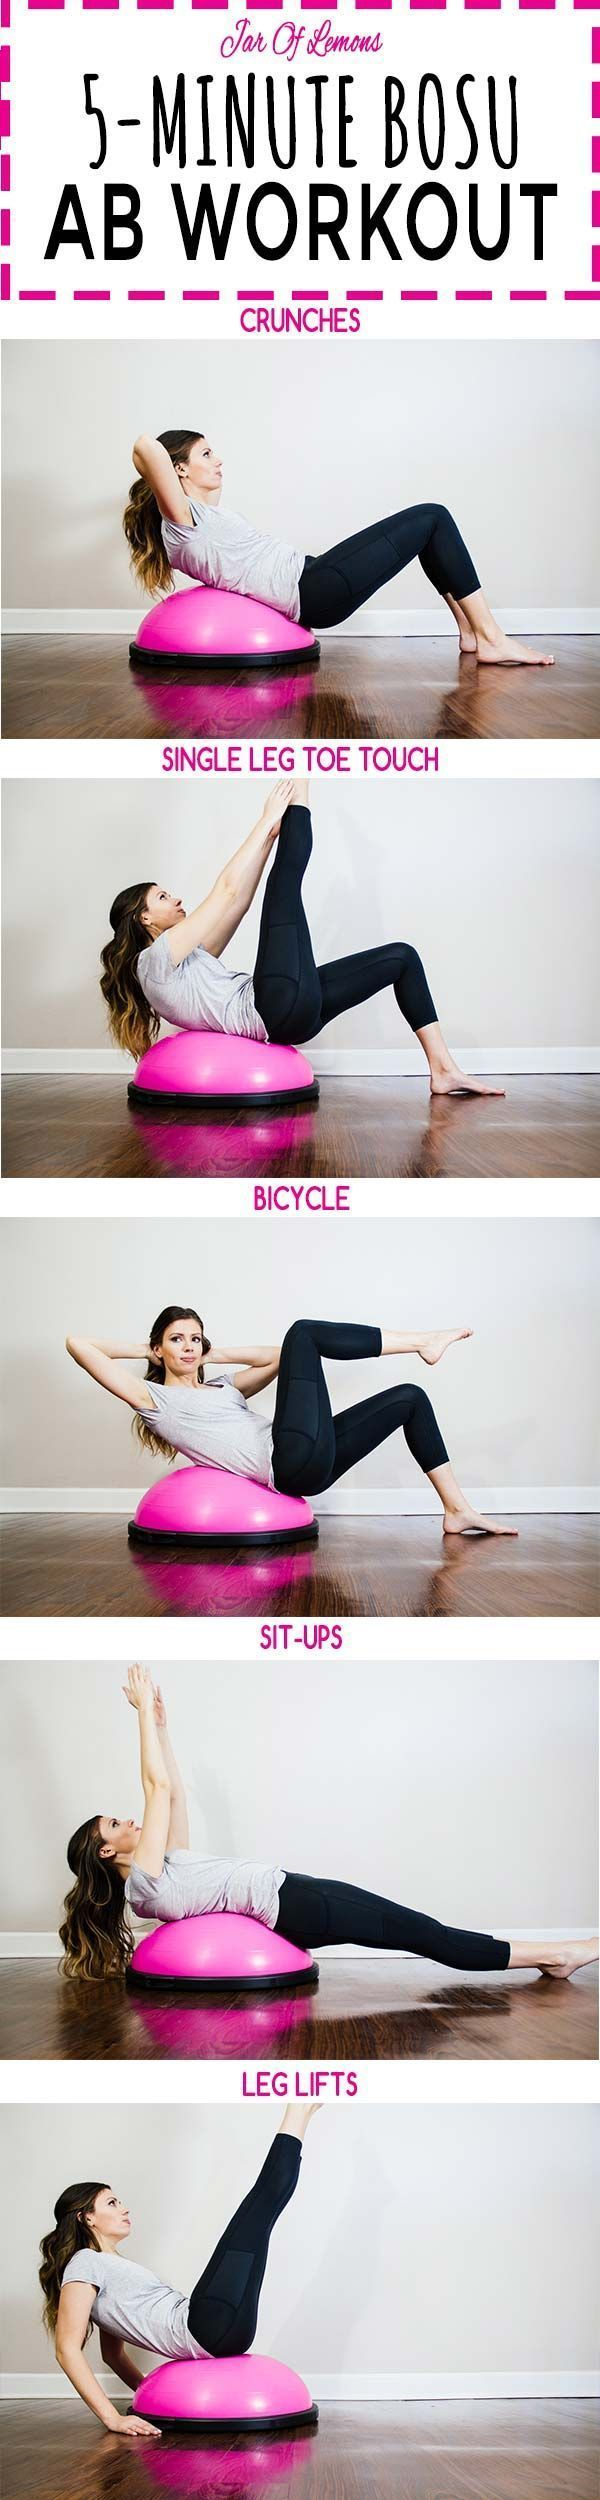 5-Minute BOSU Ab Workout! Do each move for 1 minute. Repeat this workout 2-3 times to really challenge yourself! Sponsored by @Bed Bath & Beyond #ad #BedBathandBeyond #WellBeyond core stability workout